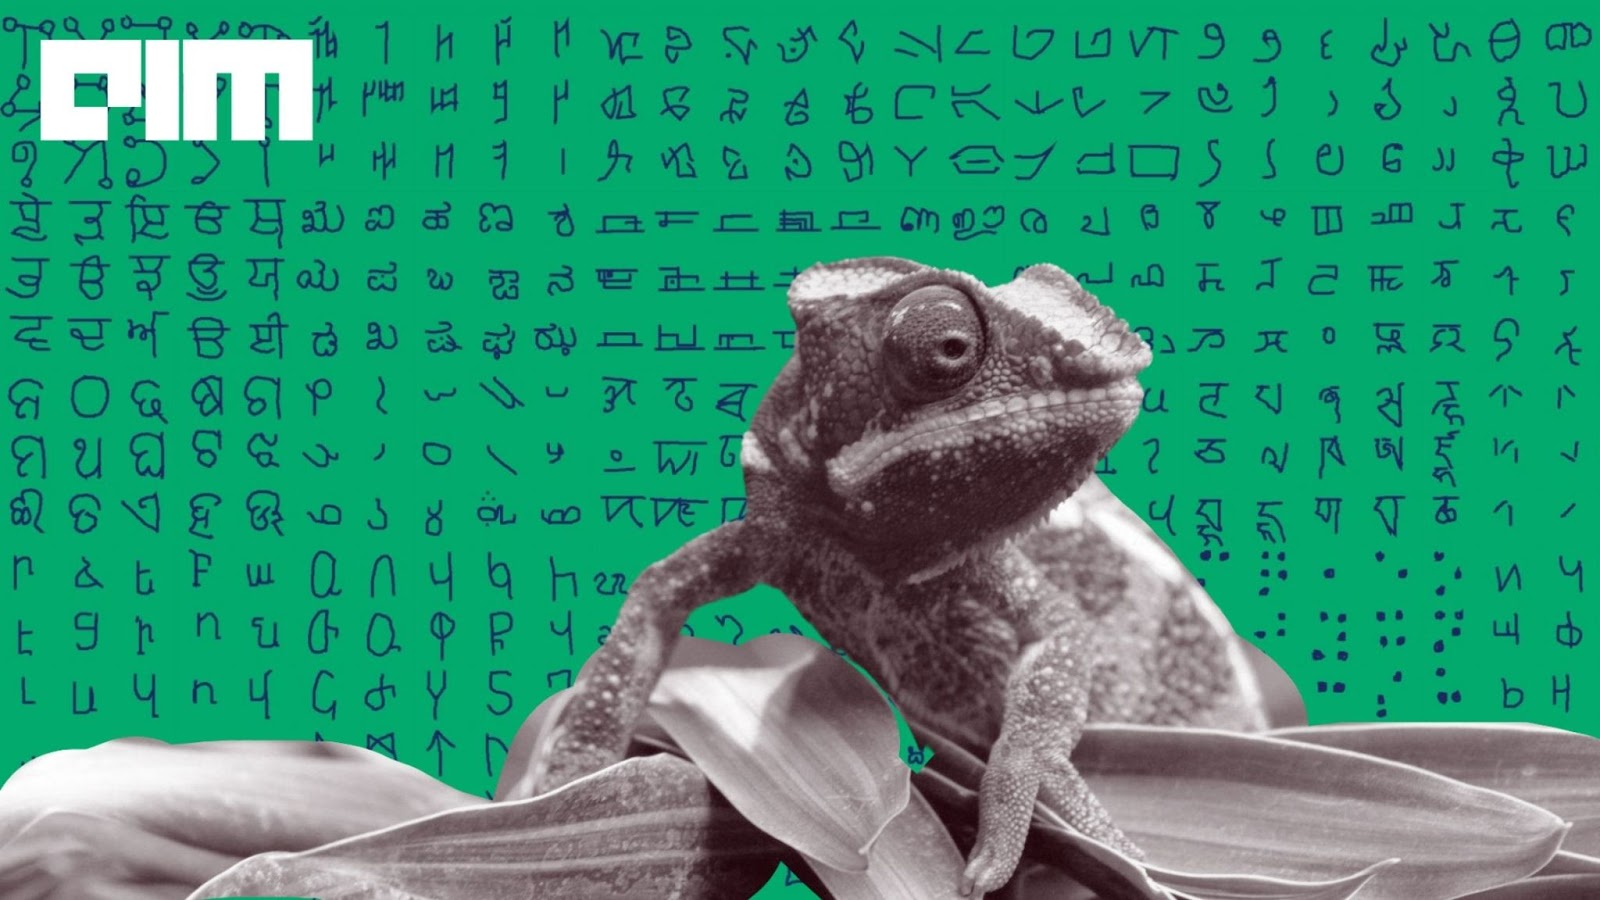 Reptile: OpenAI's Latest Meta-Learning Algorithm